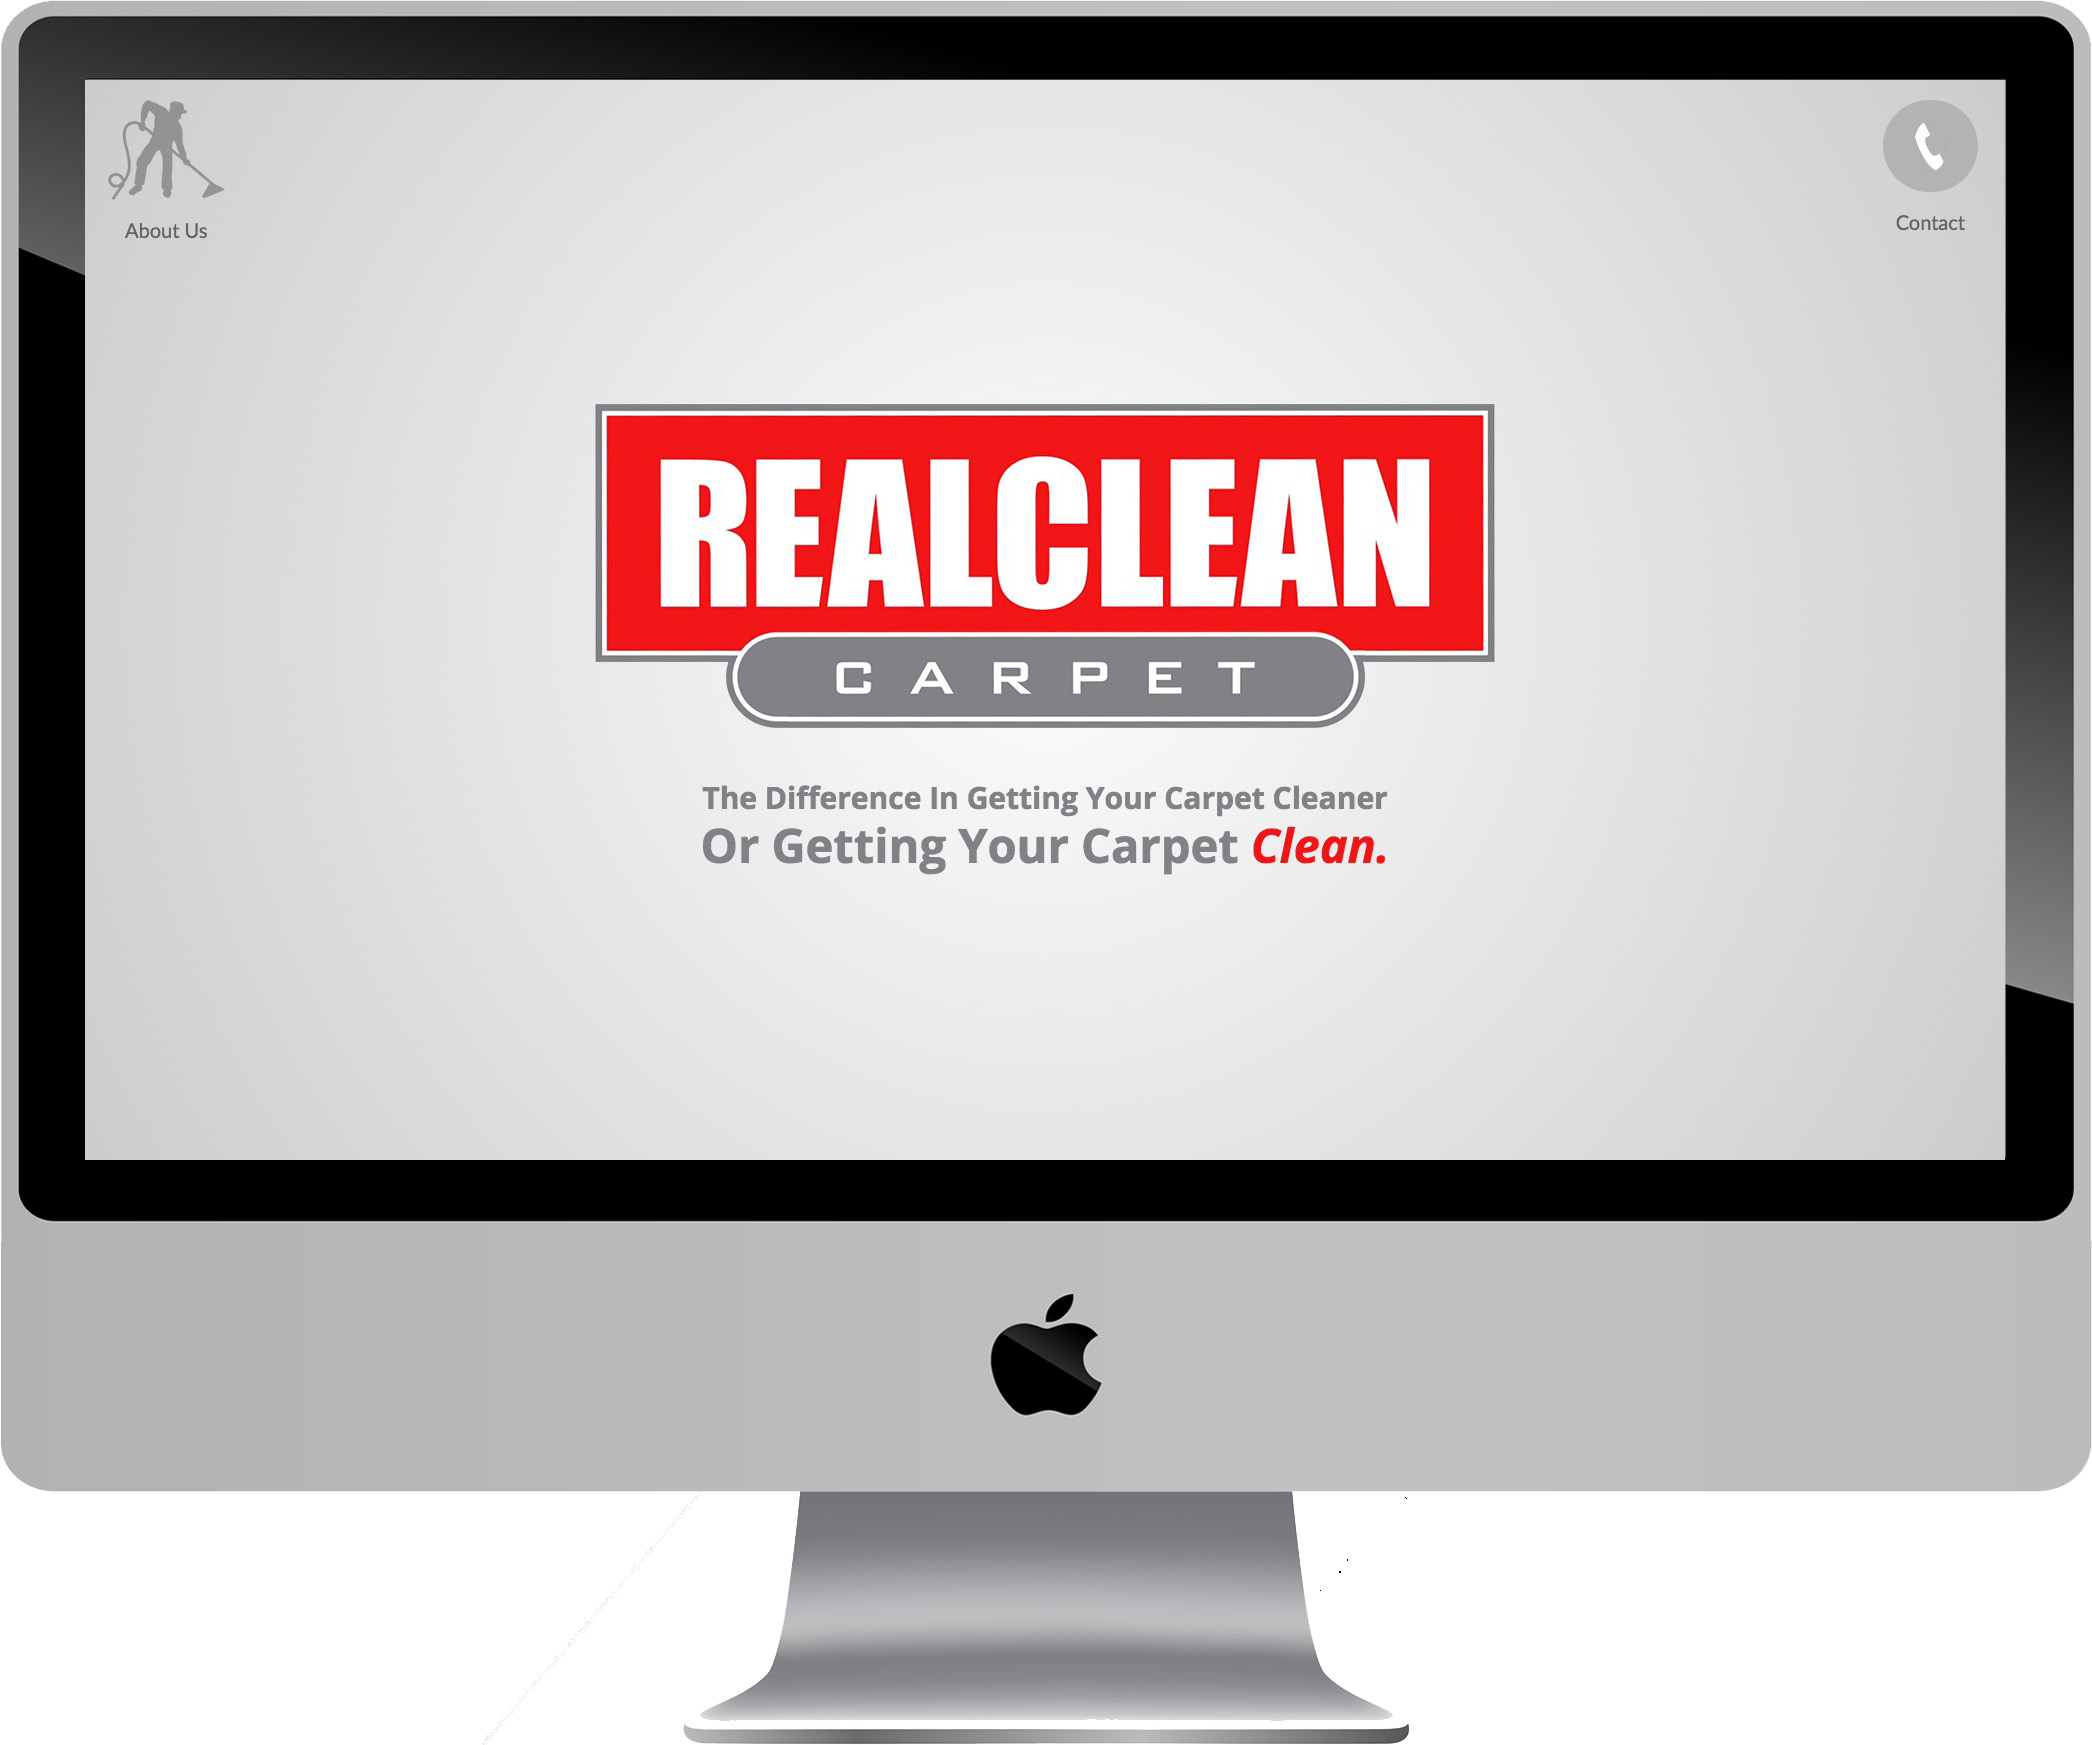 REALCLEAN Carpet Minimalist Website Design